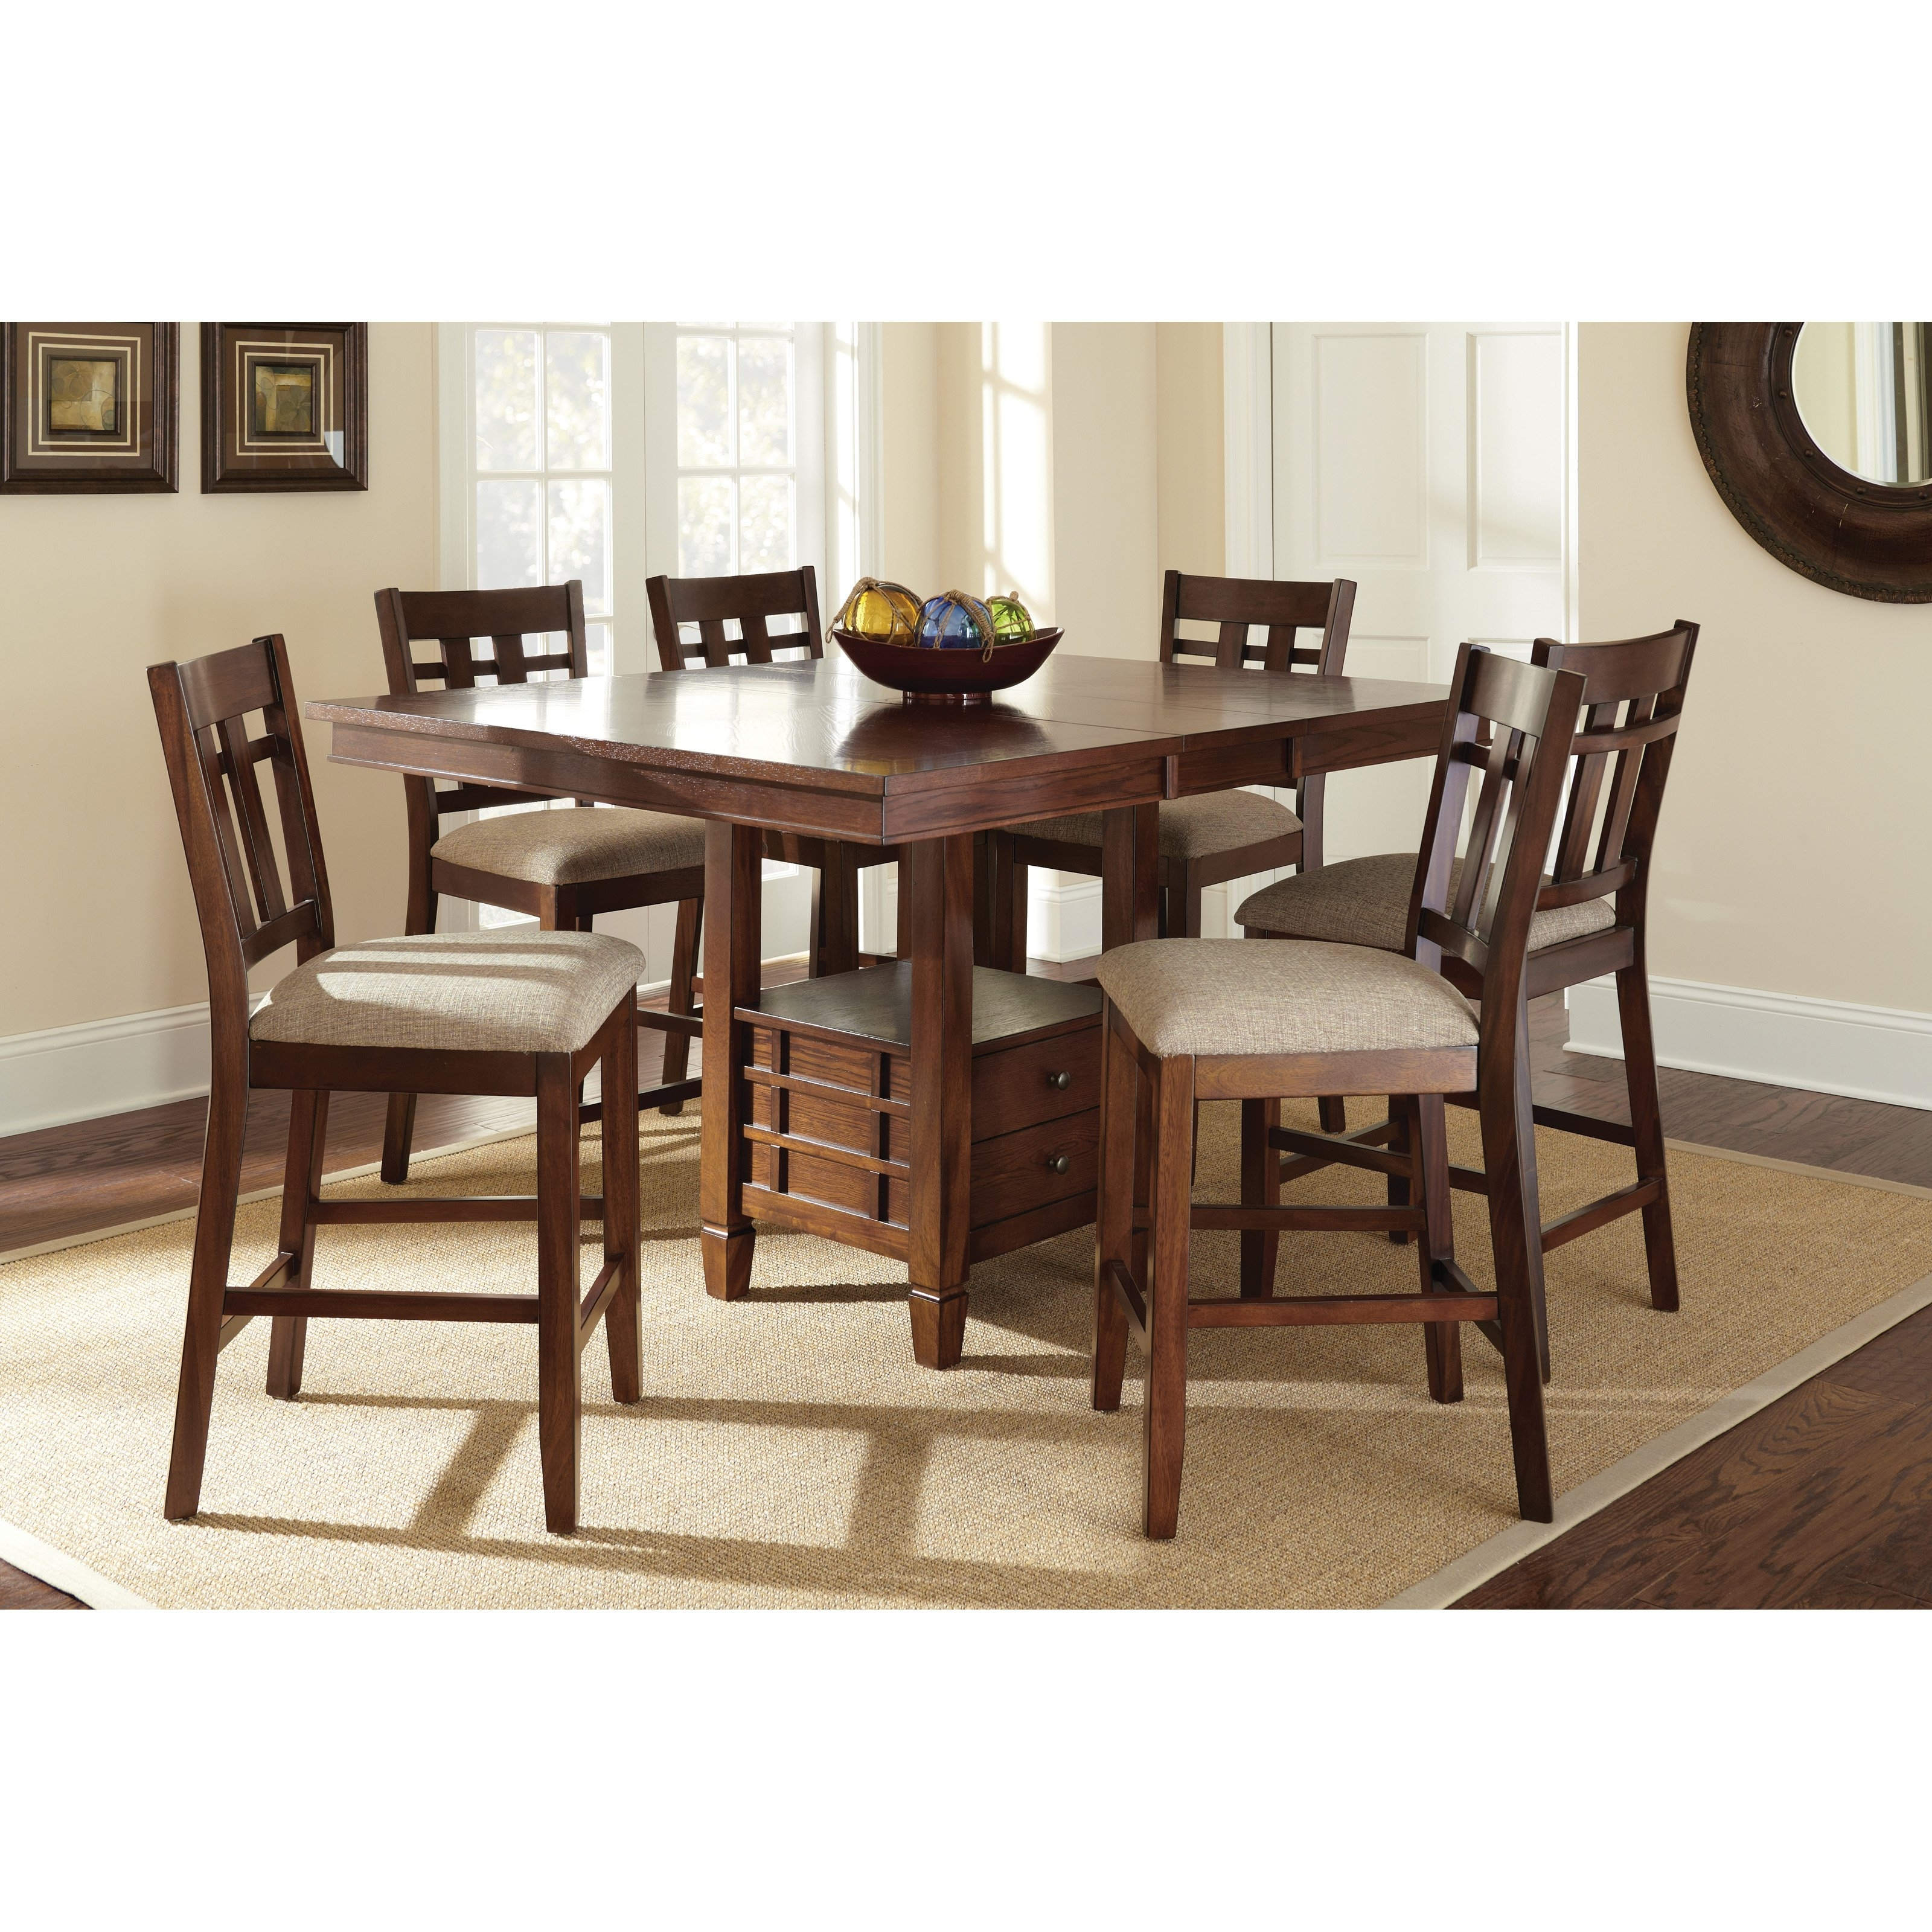 Steve Silver Bolton 7 Piece Counter Height Storage Dining Table Set For Current Candice Ii 7 Piece Extension Rectangle Dining Sets (Image 19 of 20)